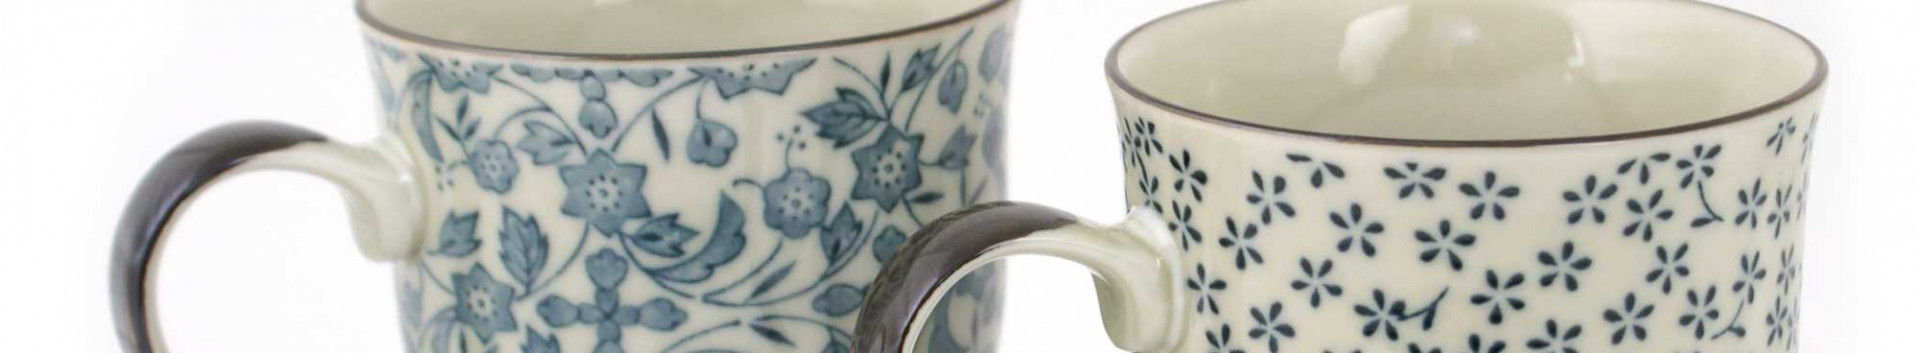 Japanese handle cups made in Japan